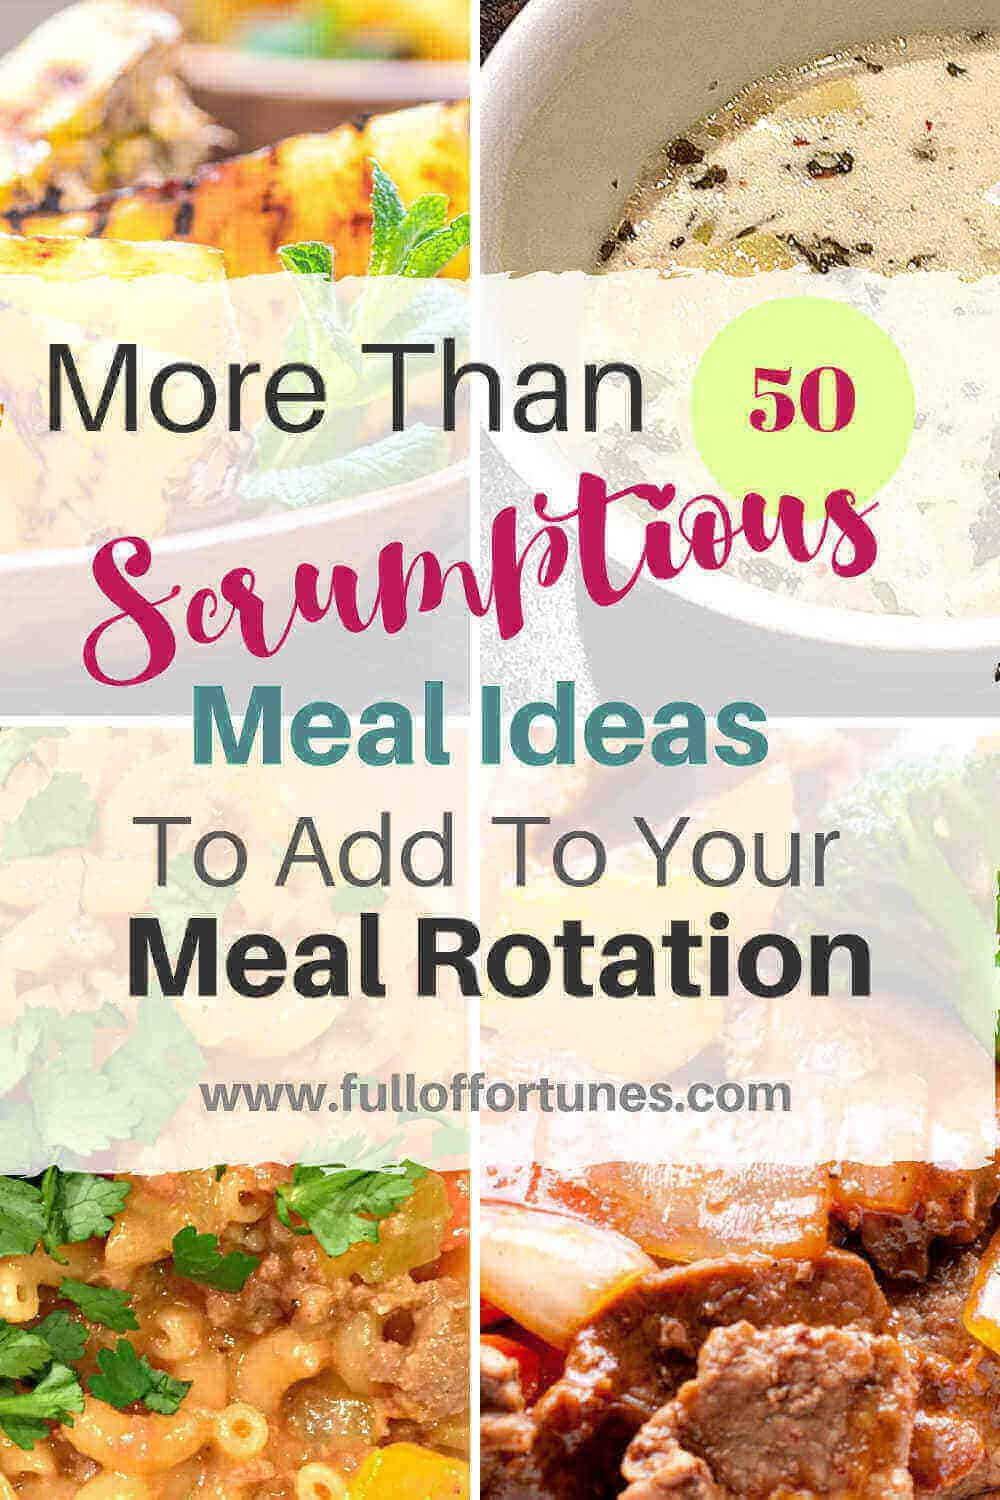 More Than 50+ Meal Ideas To Add To Your Meal Rotation